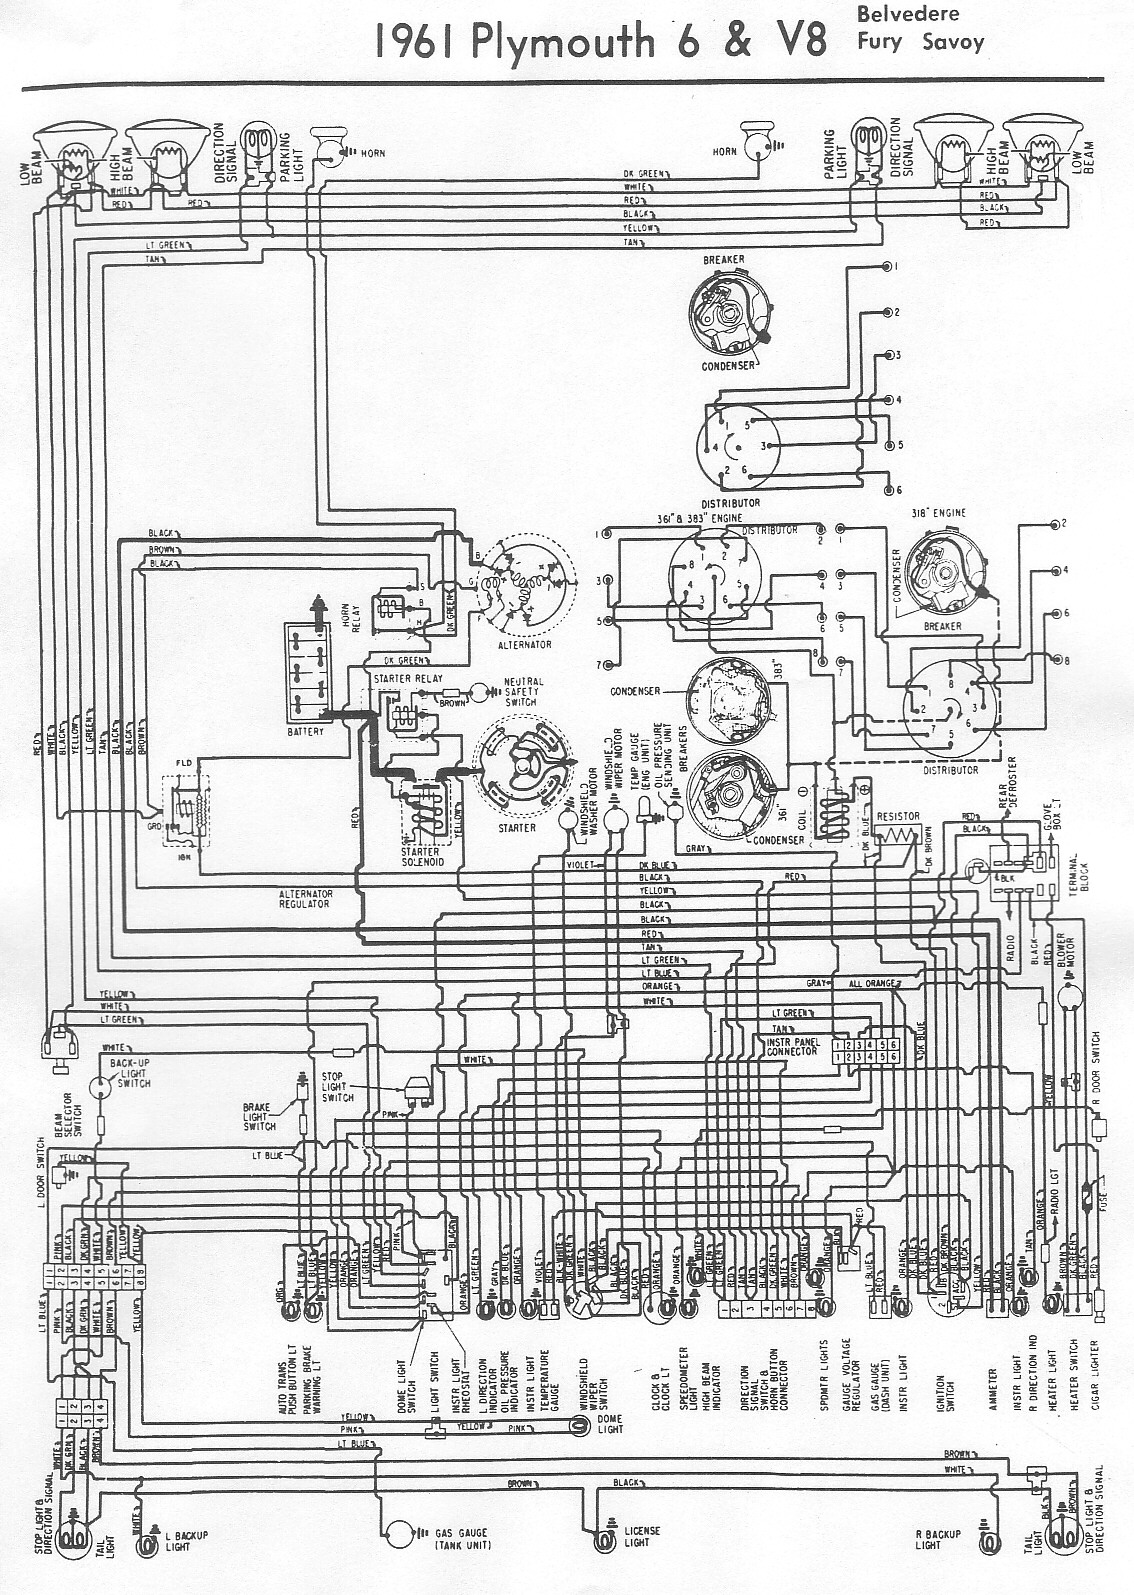 Free Auto    Wiring       Diagram     1961 Plymouth Belvedere     Fury    or Savoy